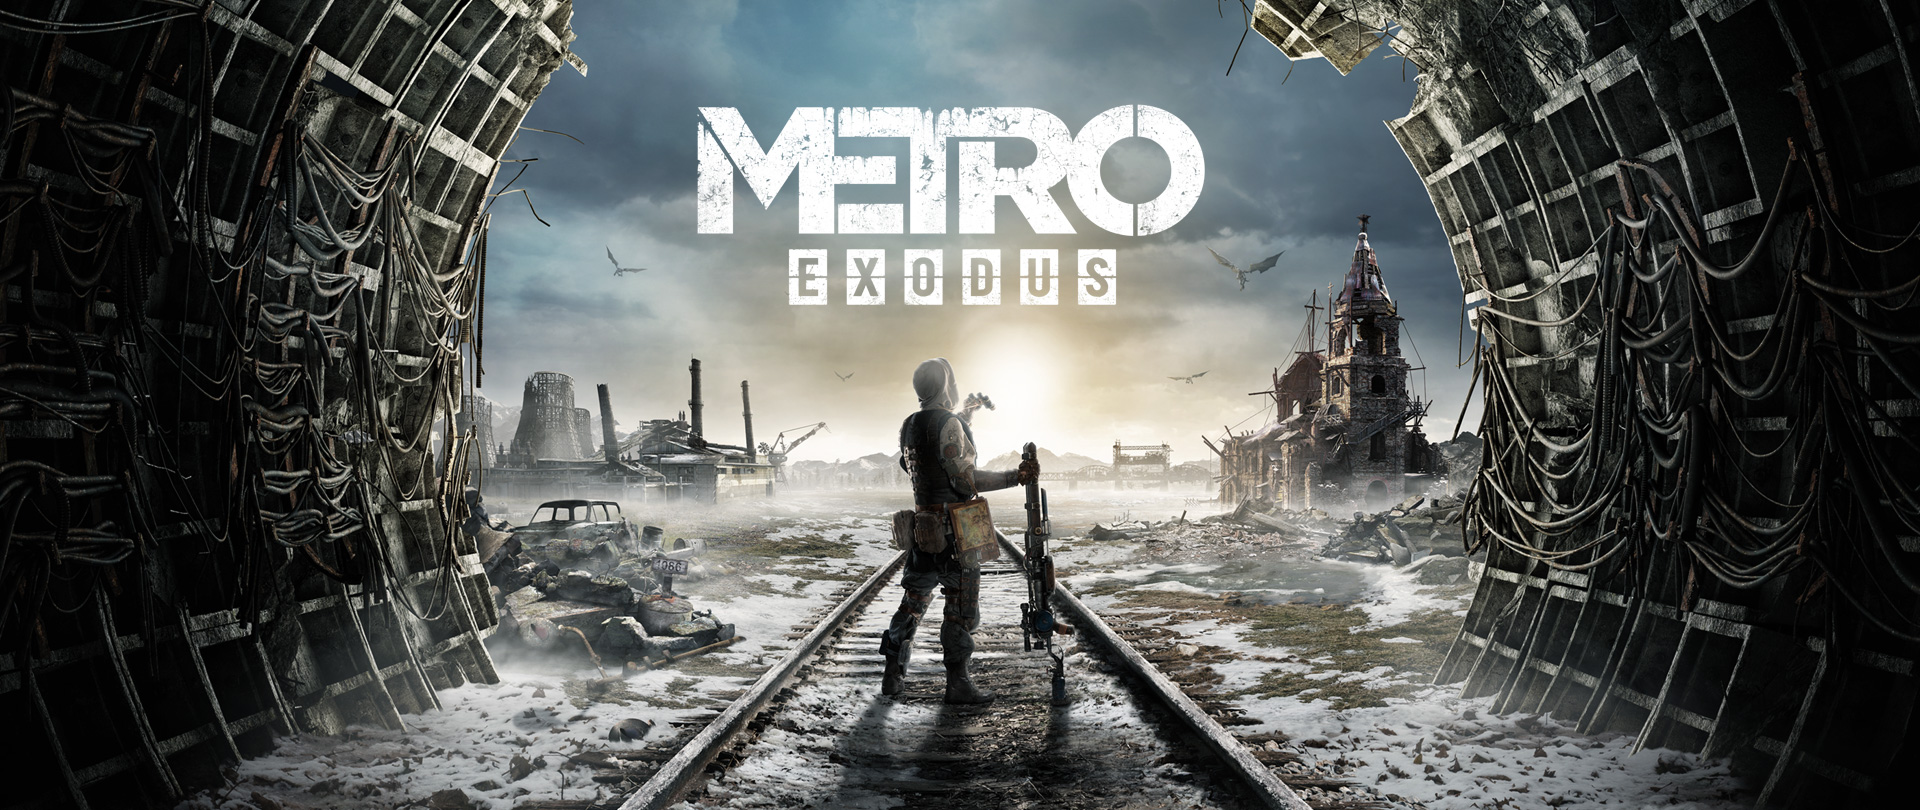 Metro Exodus leaves Valve – Steams versus Epic Games